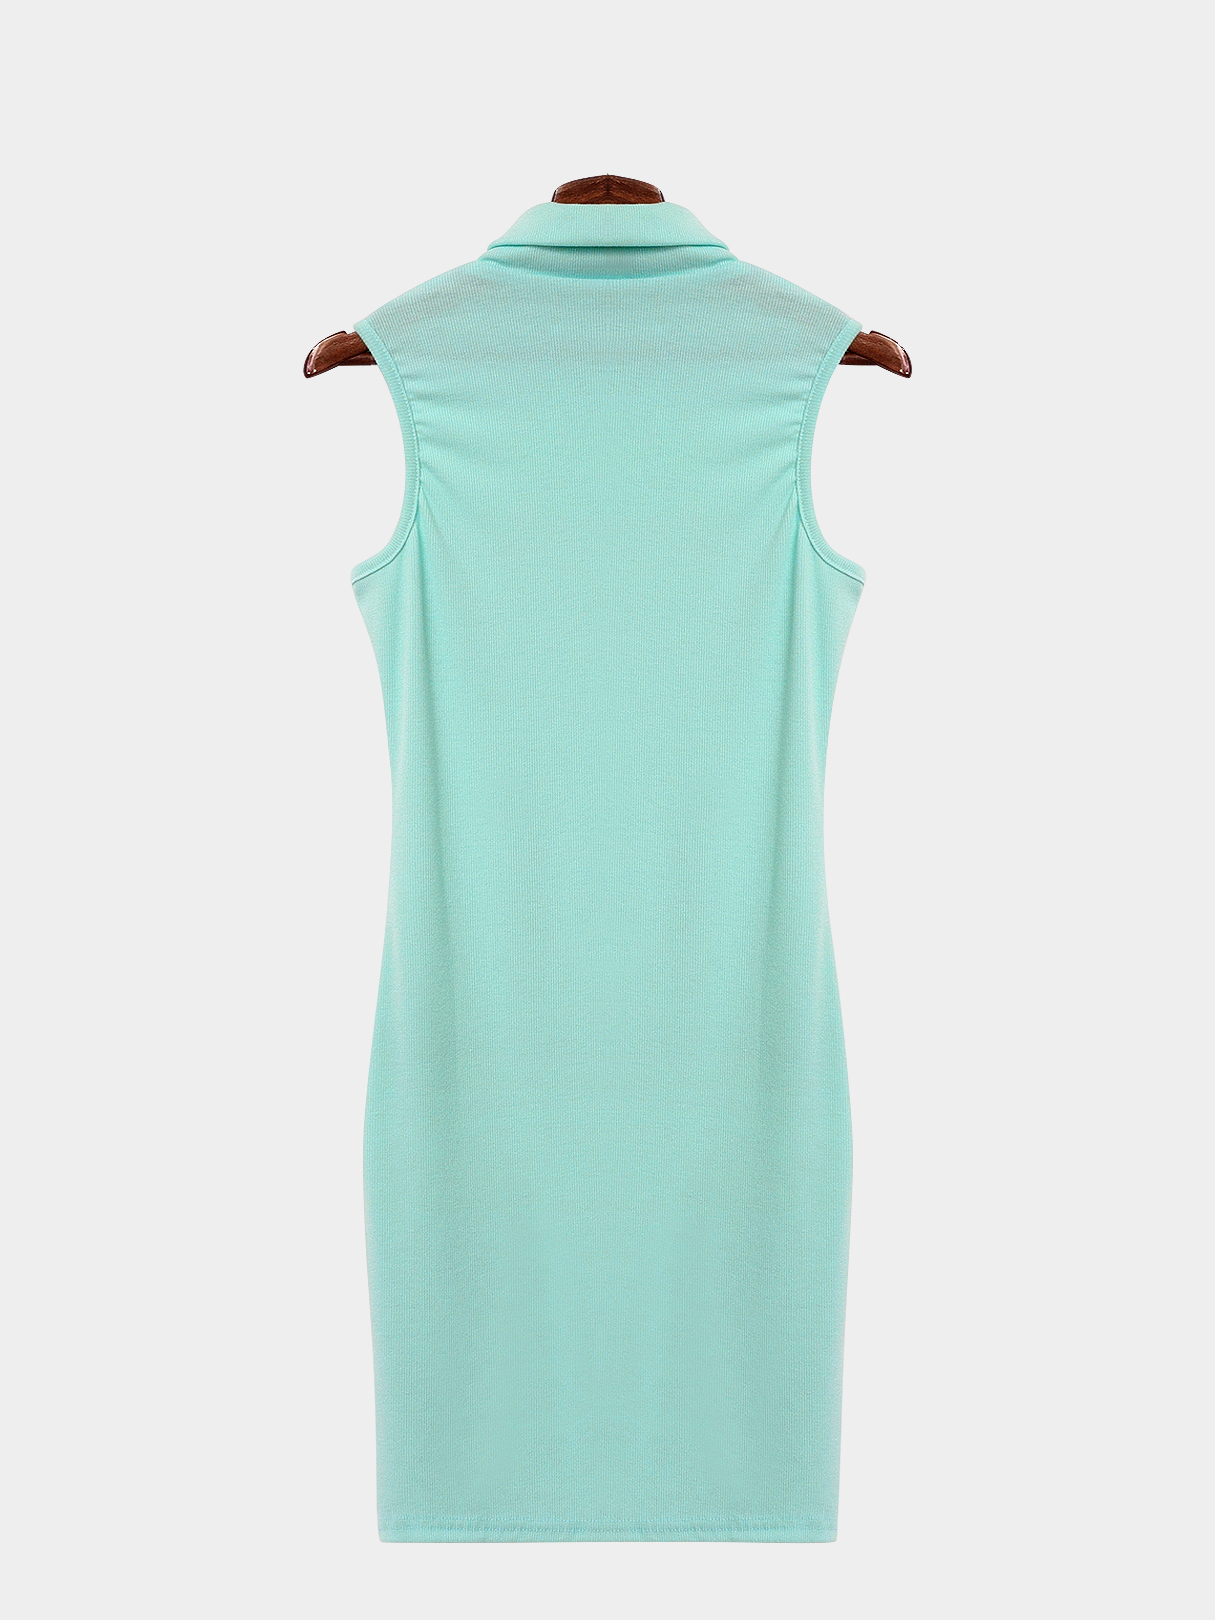 Plain Green Color High Neck Sleeveless Bodycon Hem Dress